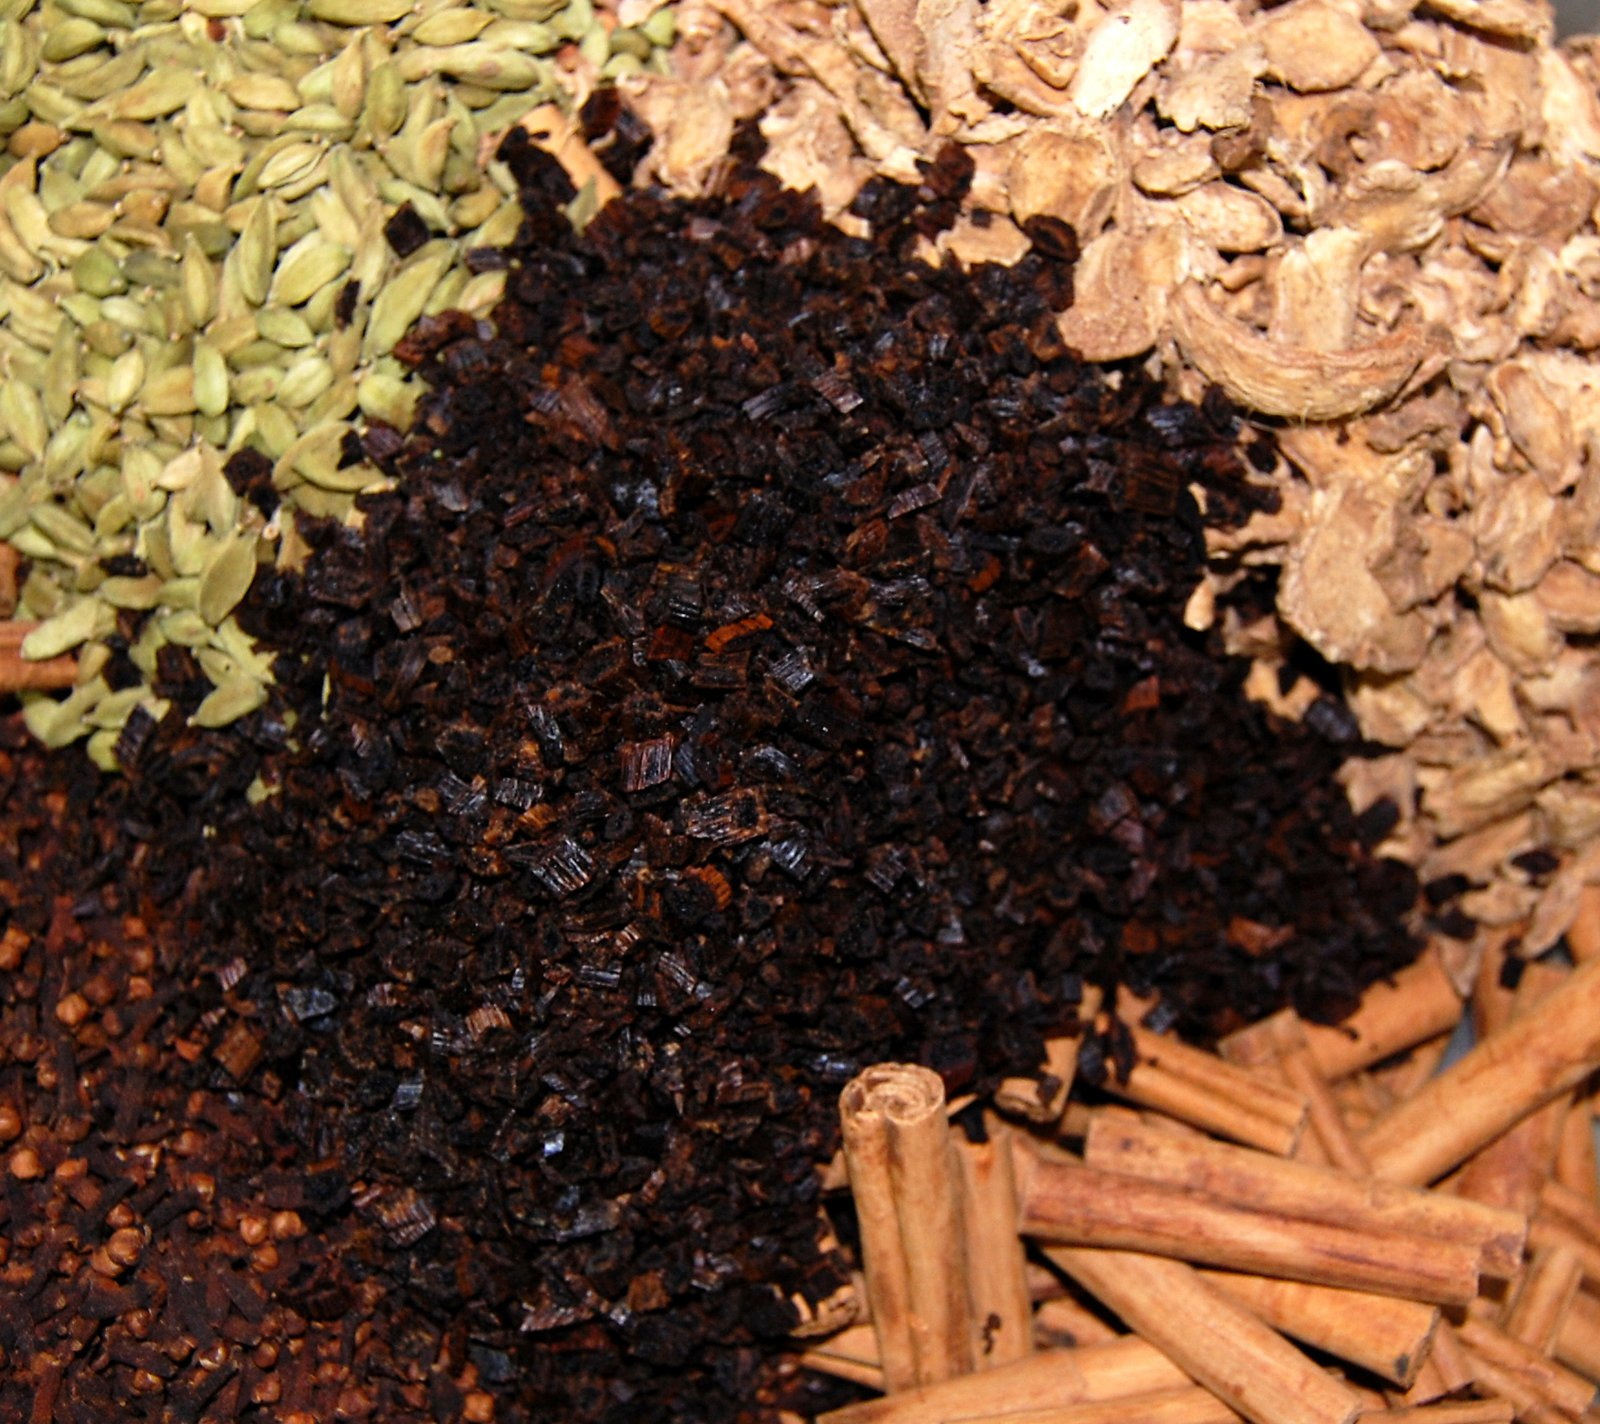 Whole Fairtrade Spices Ready For Grinding